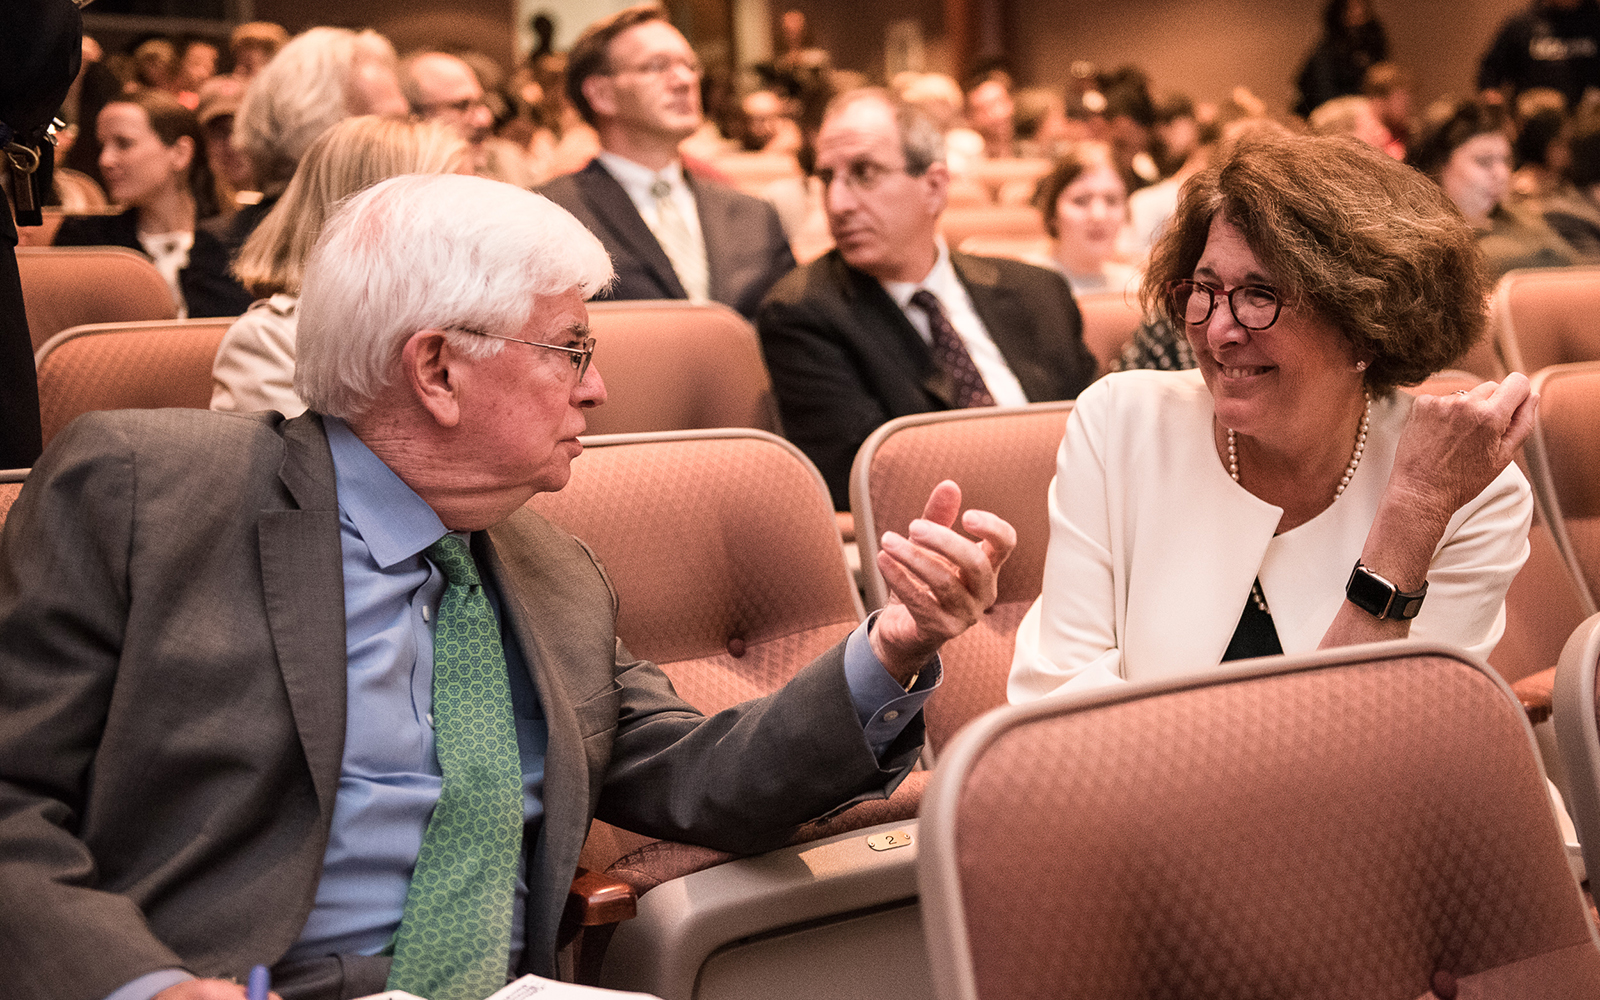 Amy Domini, the keynote speaker for the Business & Human Rights Initative Symposium, speaks with former U.S. Senator Christopher Dodd.